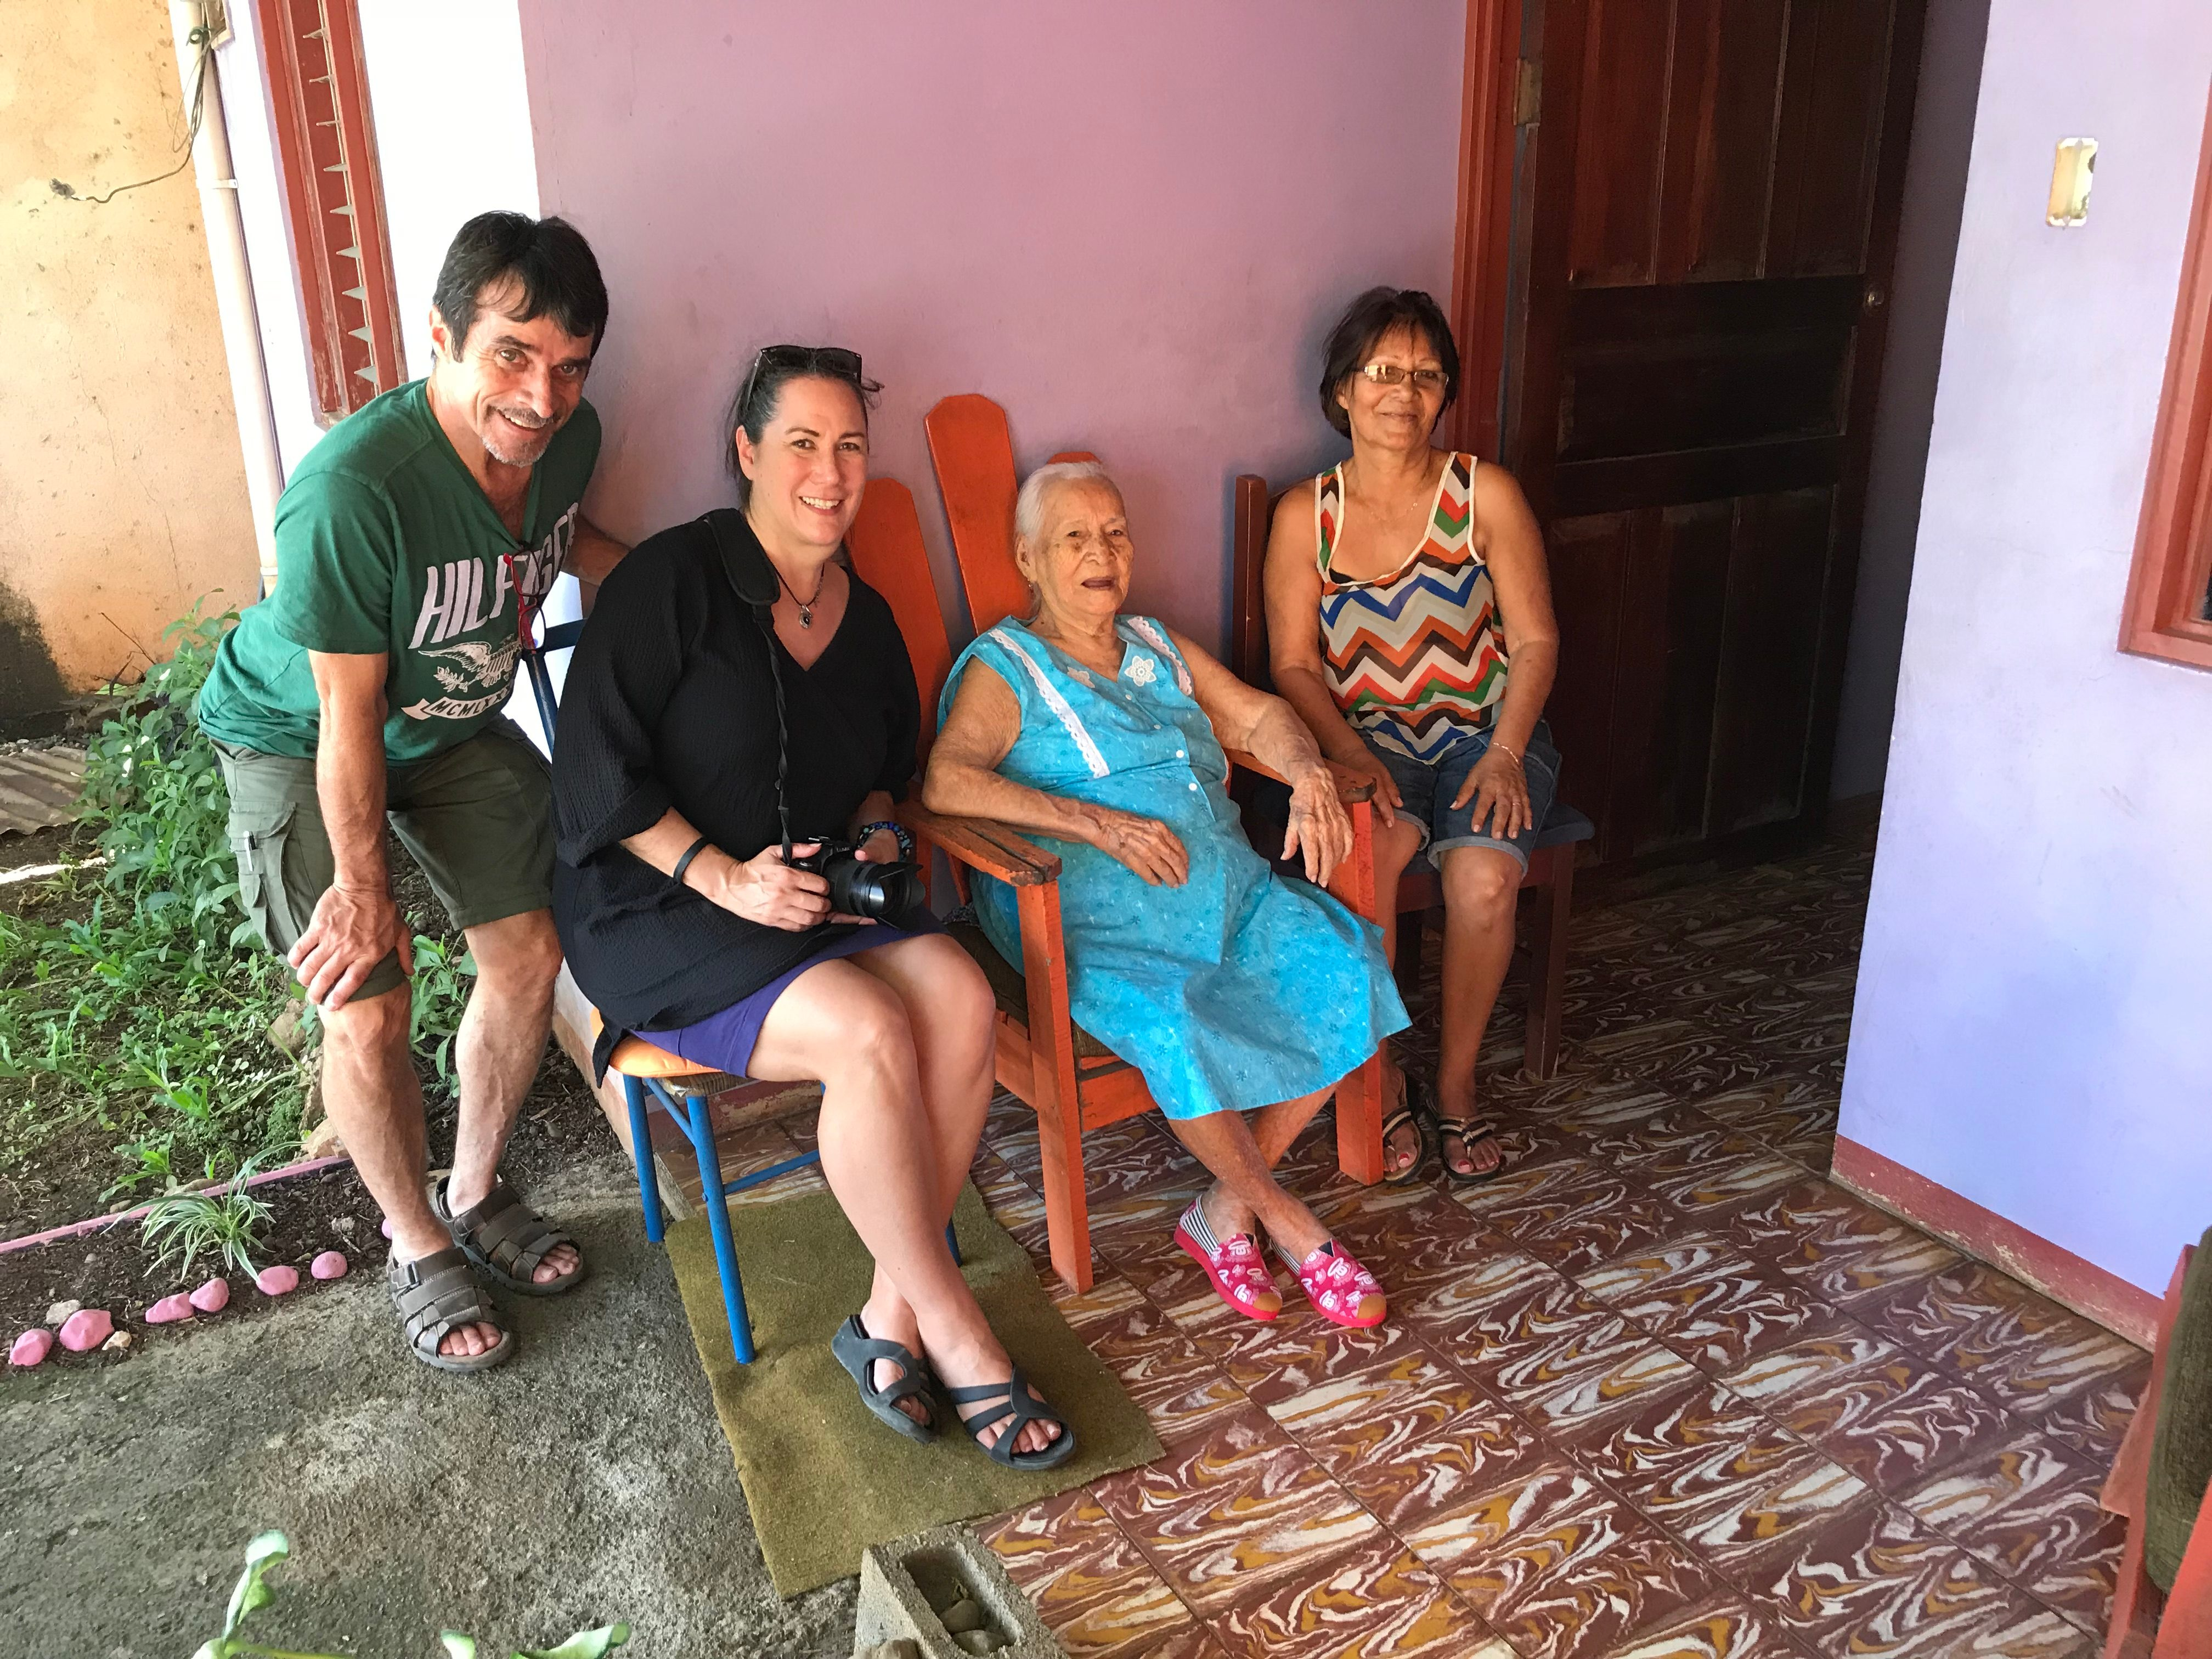 Dominga-Alvarez-Rosales Centenarians 100 years old costa rica blue zone